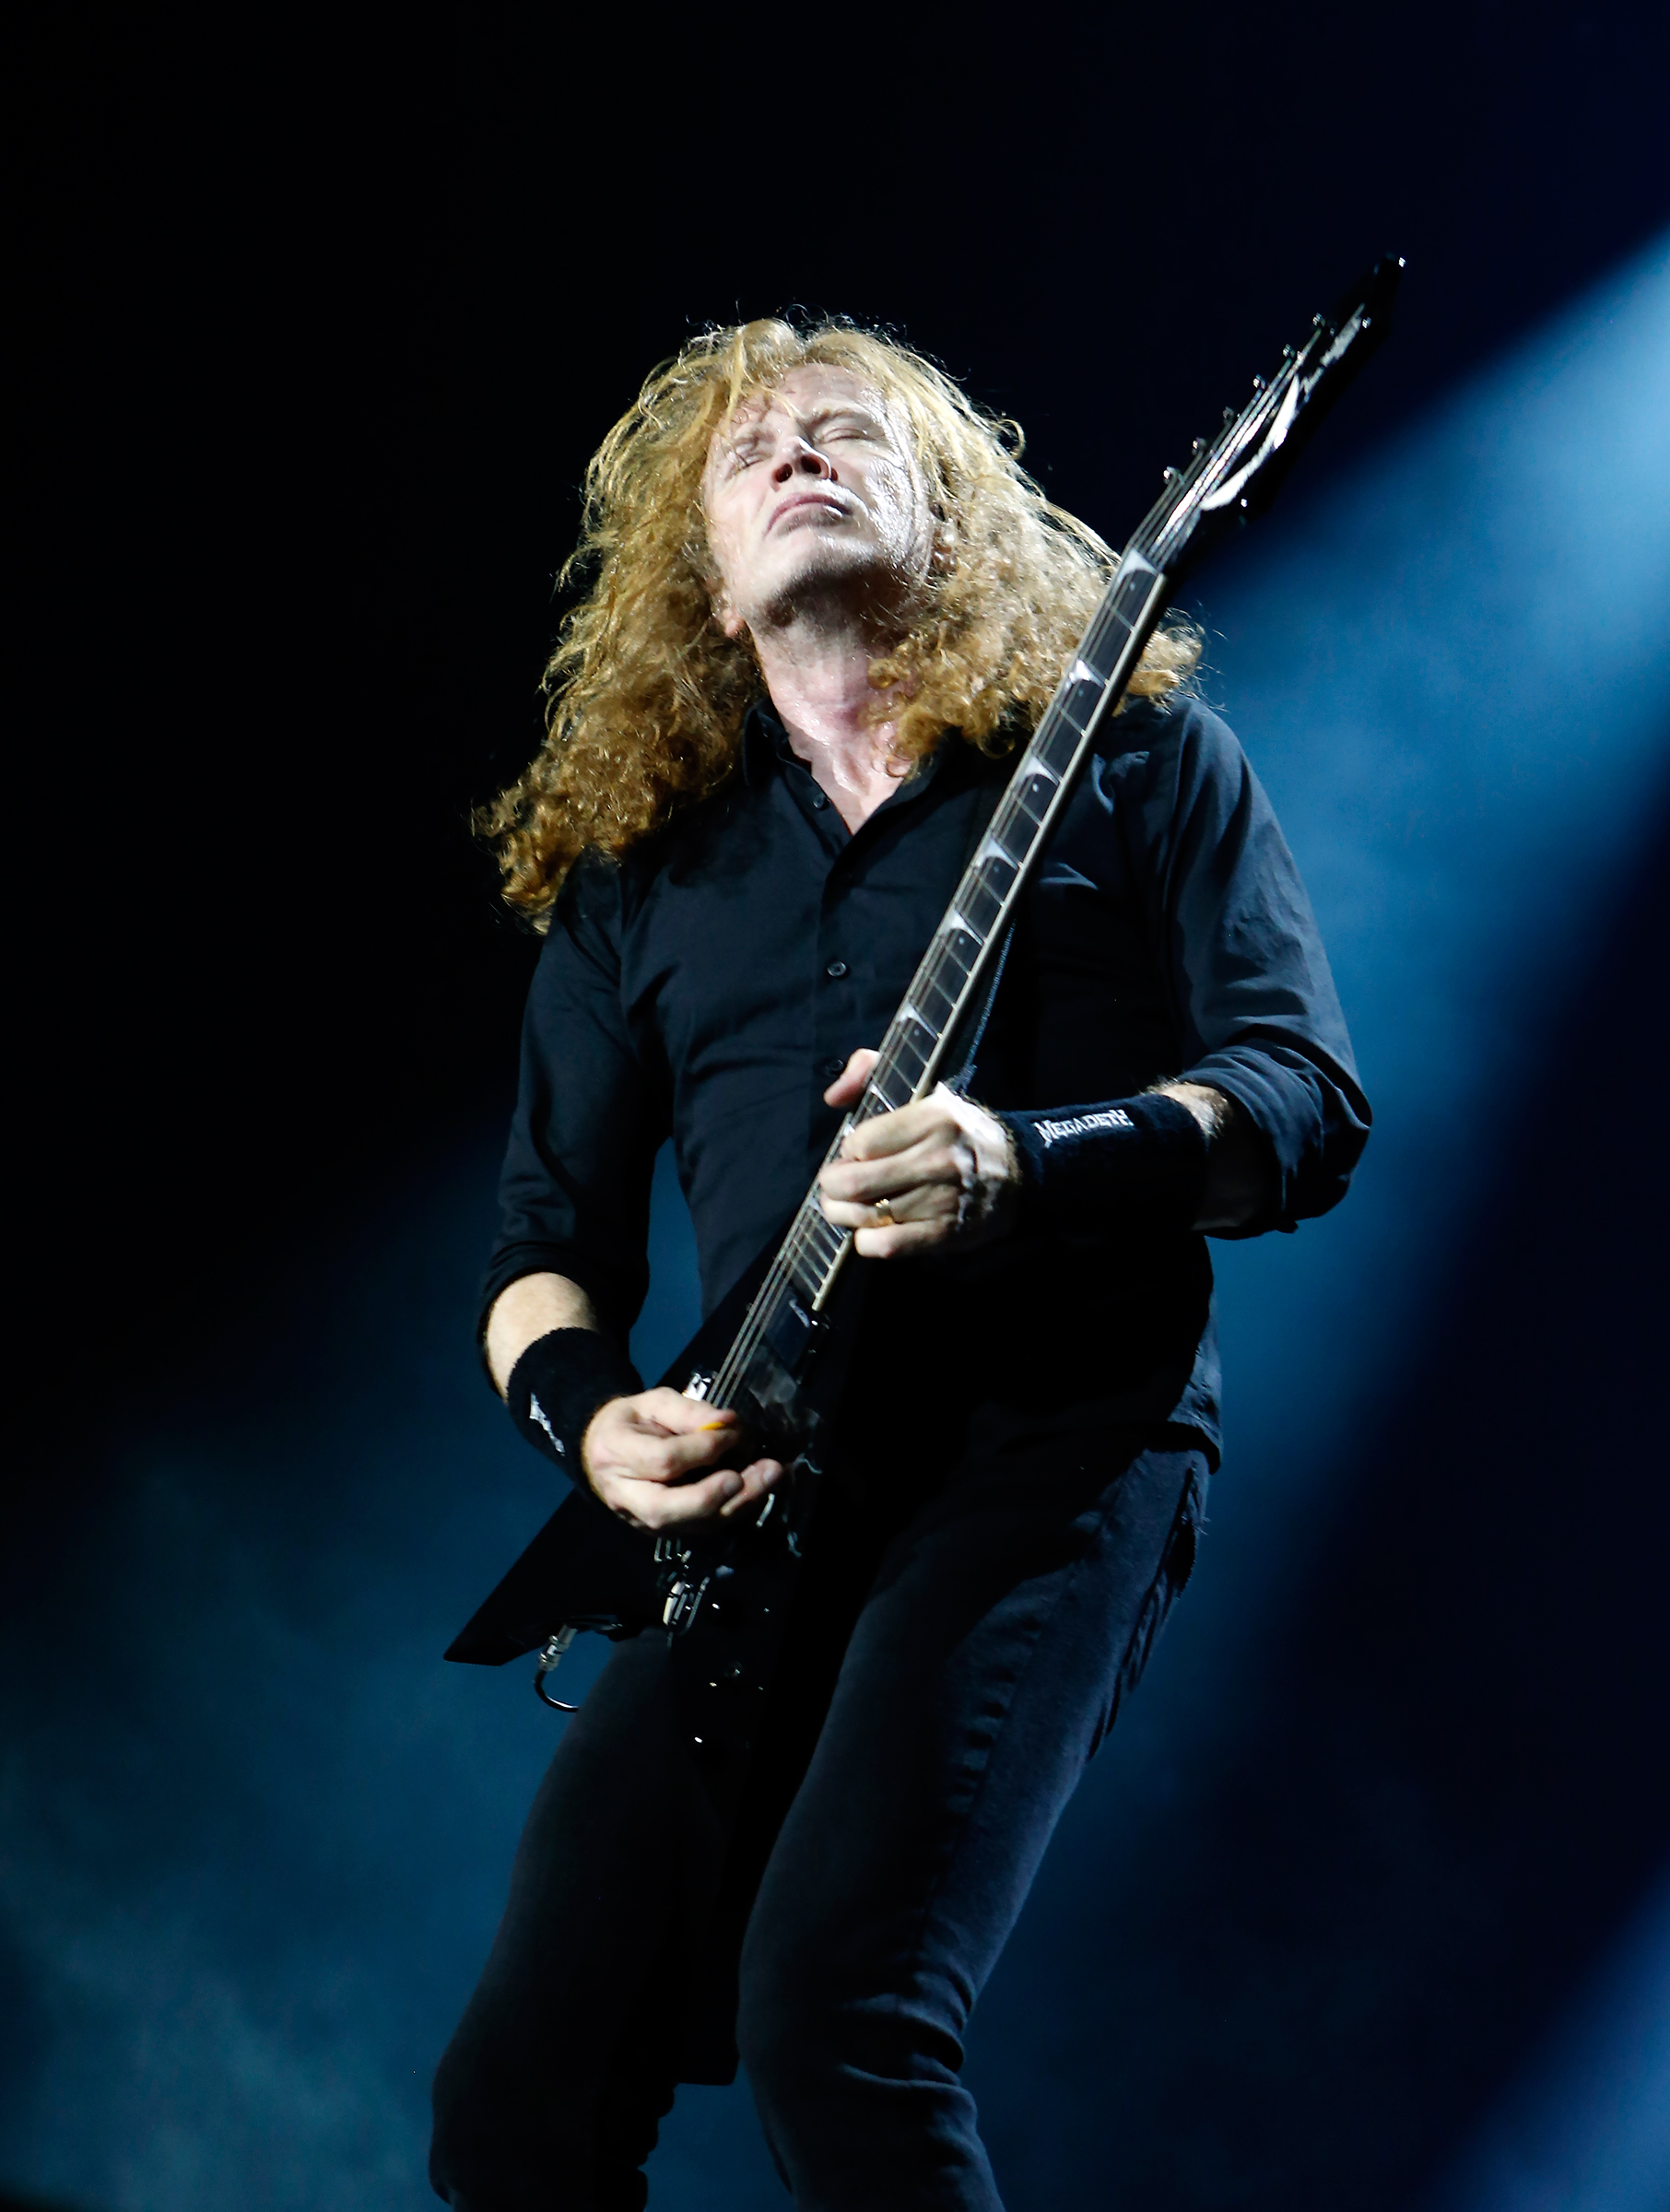 LONDON, ENGLAND - JUNE 16: Dave Mustaine of Megadeth performs during the Stone Free Festival at The O2 Arena on June 16, 2018 in London, England. (Photo by Chiaki Nozu/WireImage)